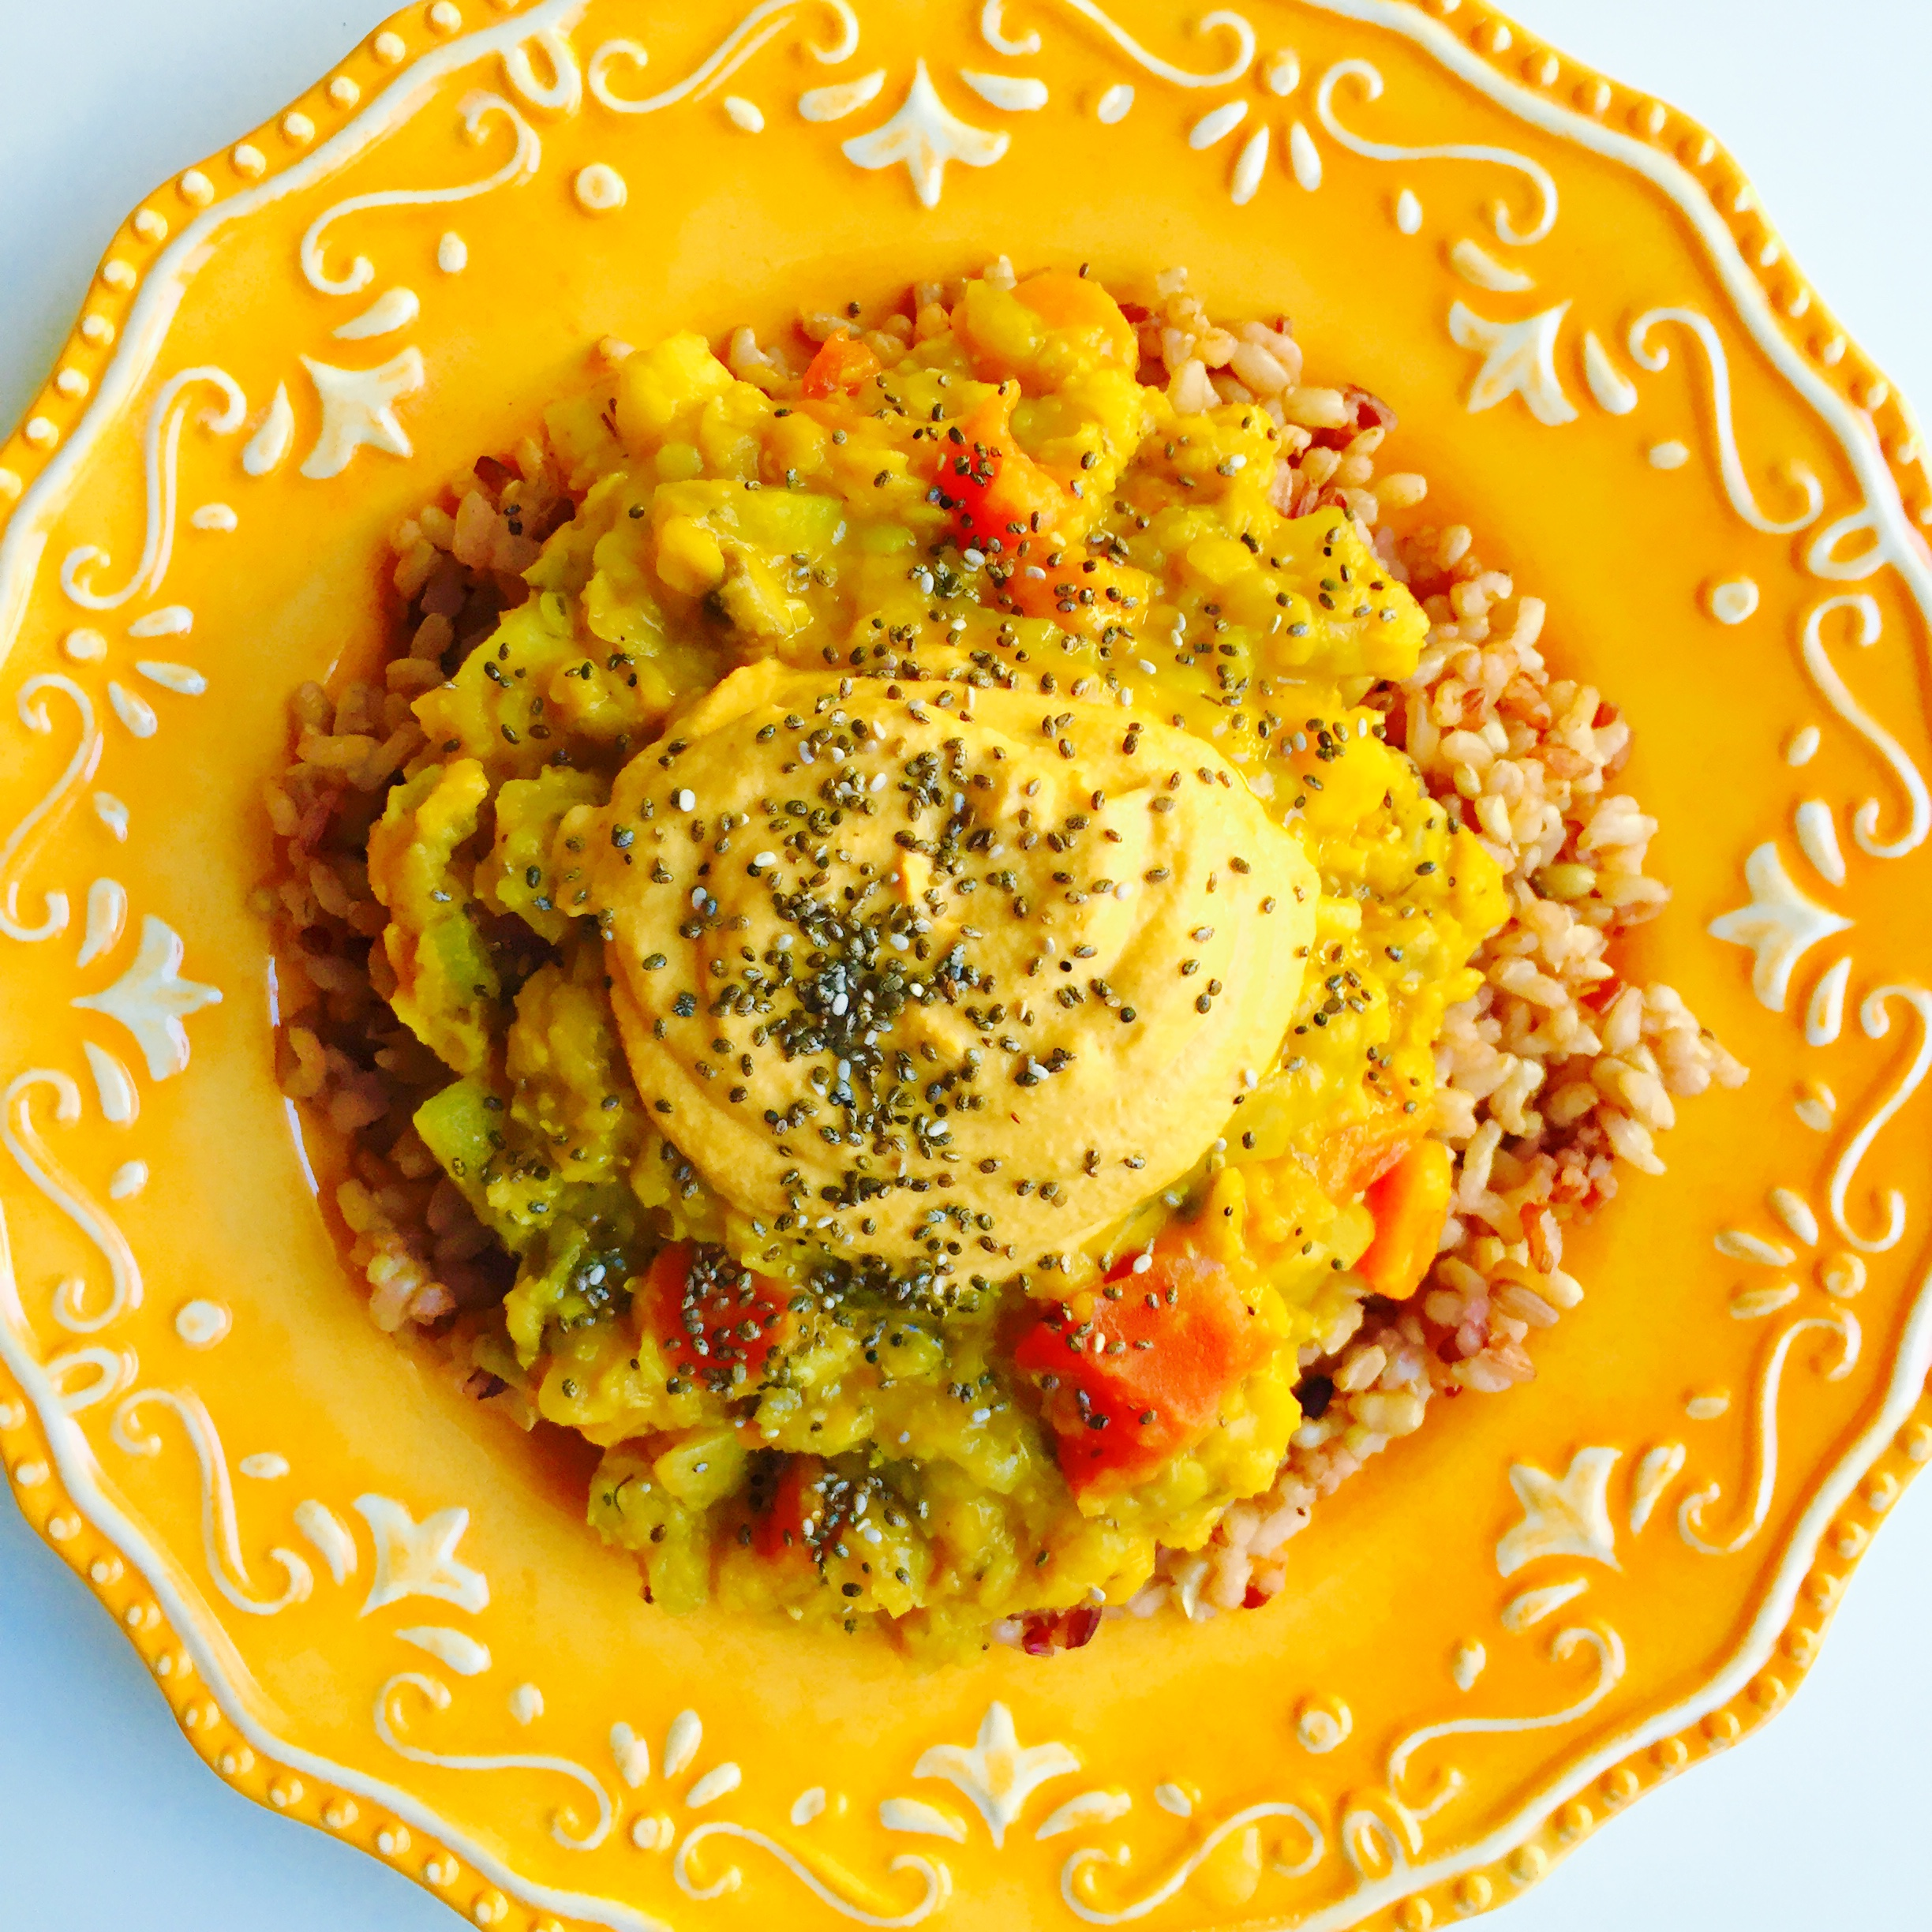 Nutritarian Dr Fuhrman Eat to Live Lentil Brown Rice and cheese bowl MyMommaToldMe.com